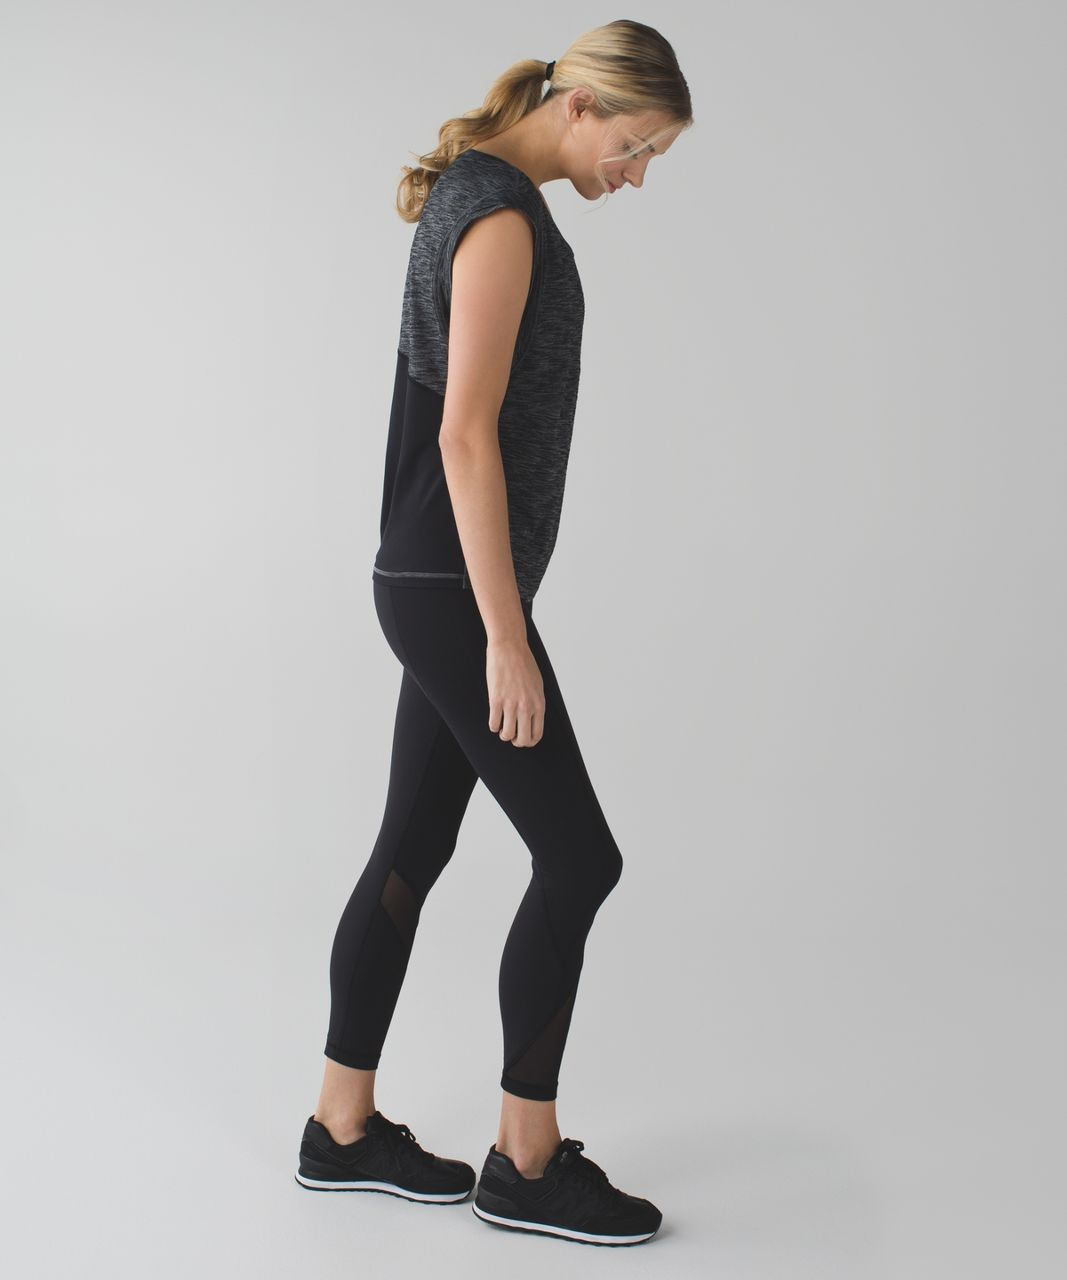 Lululemon Get Sweat Tee - Heathered Black / Black